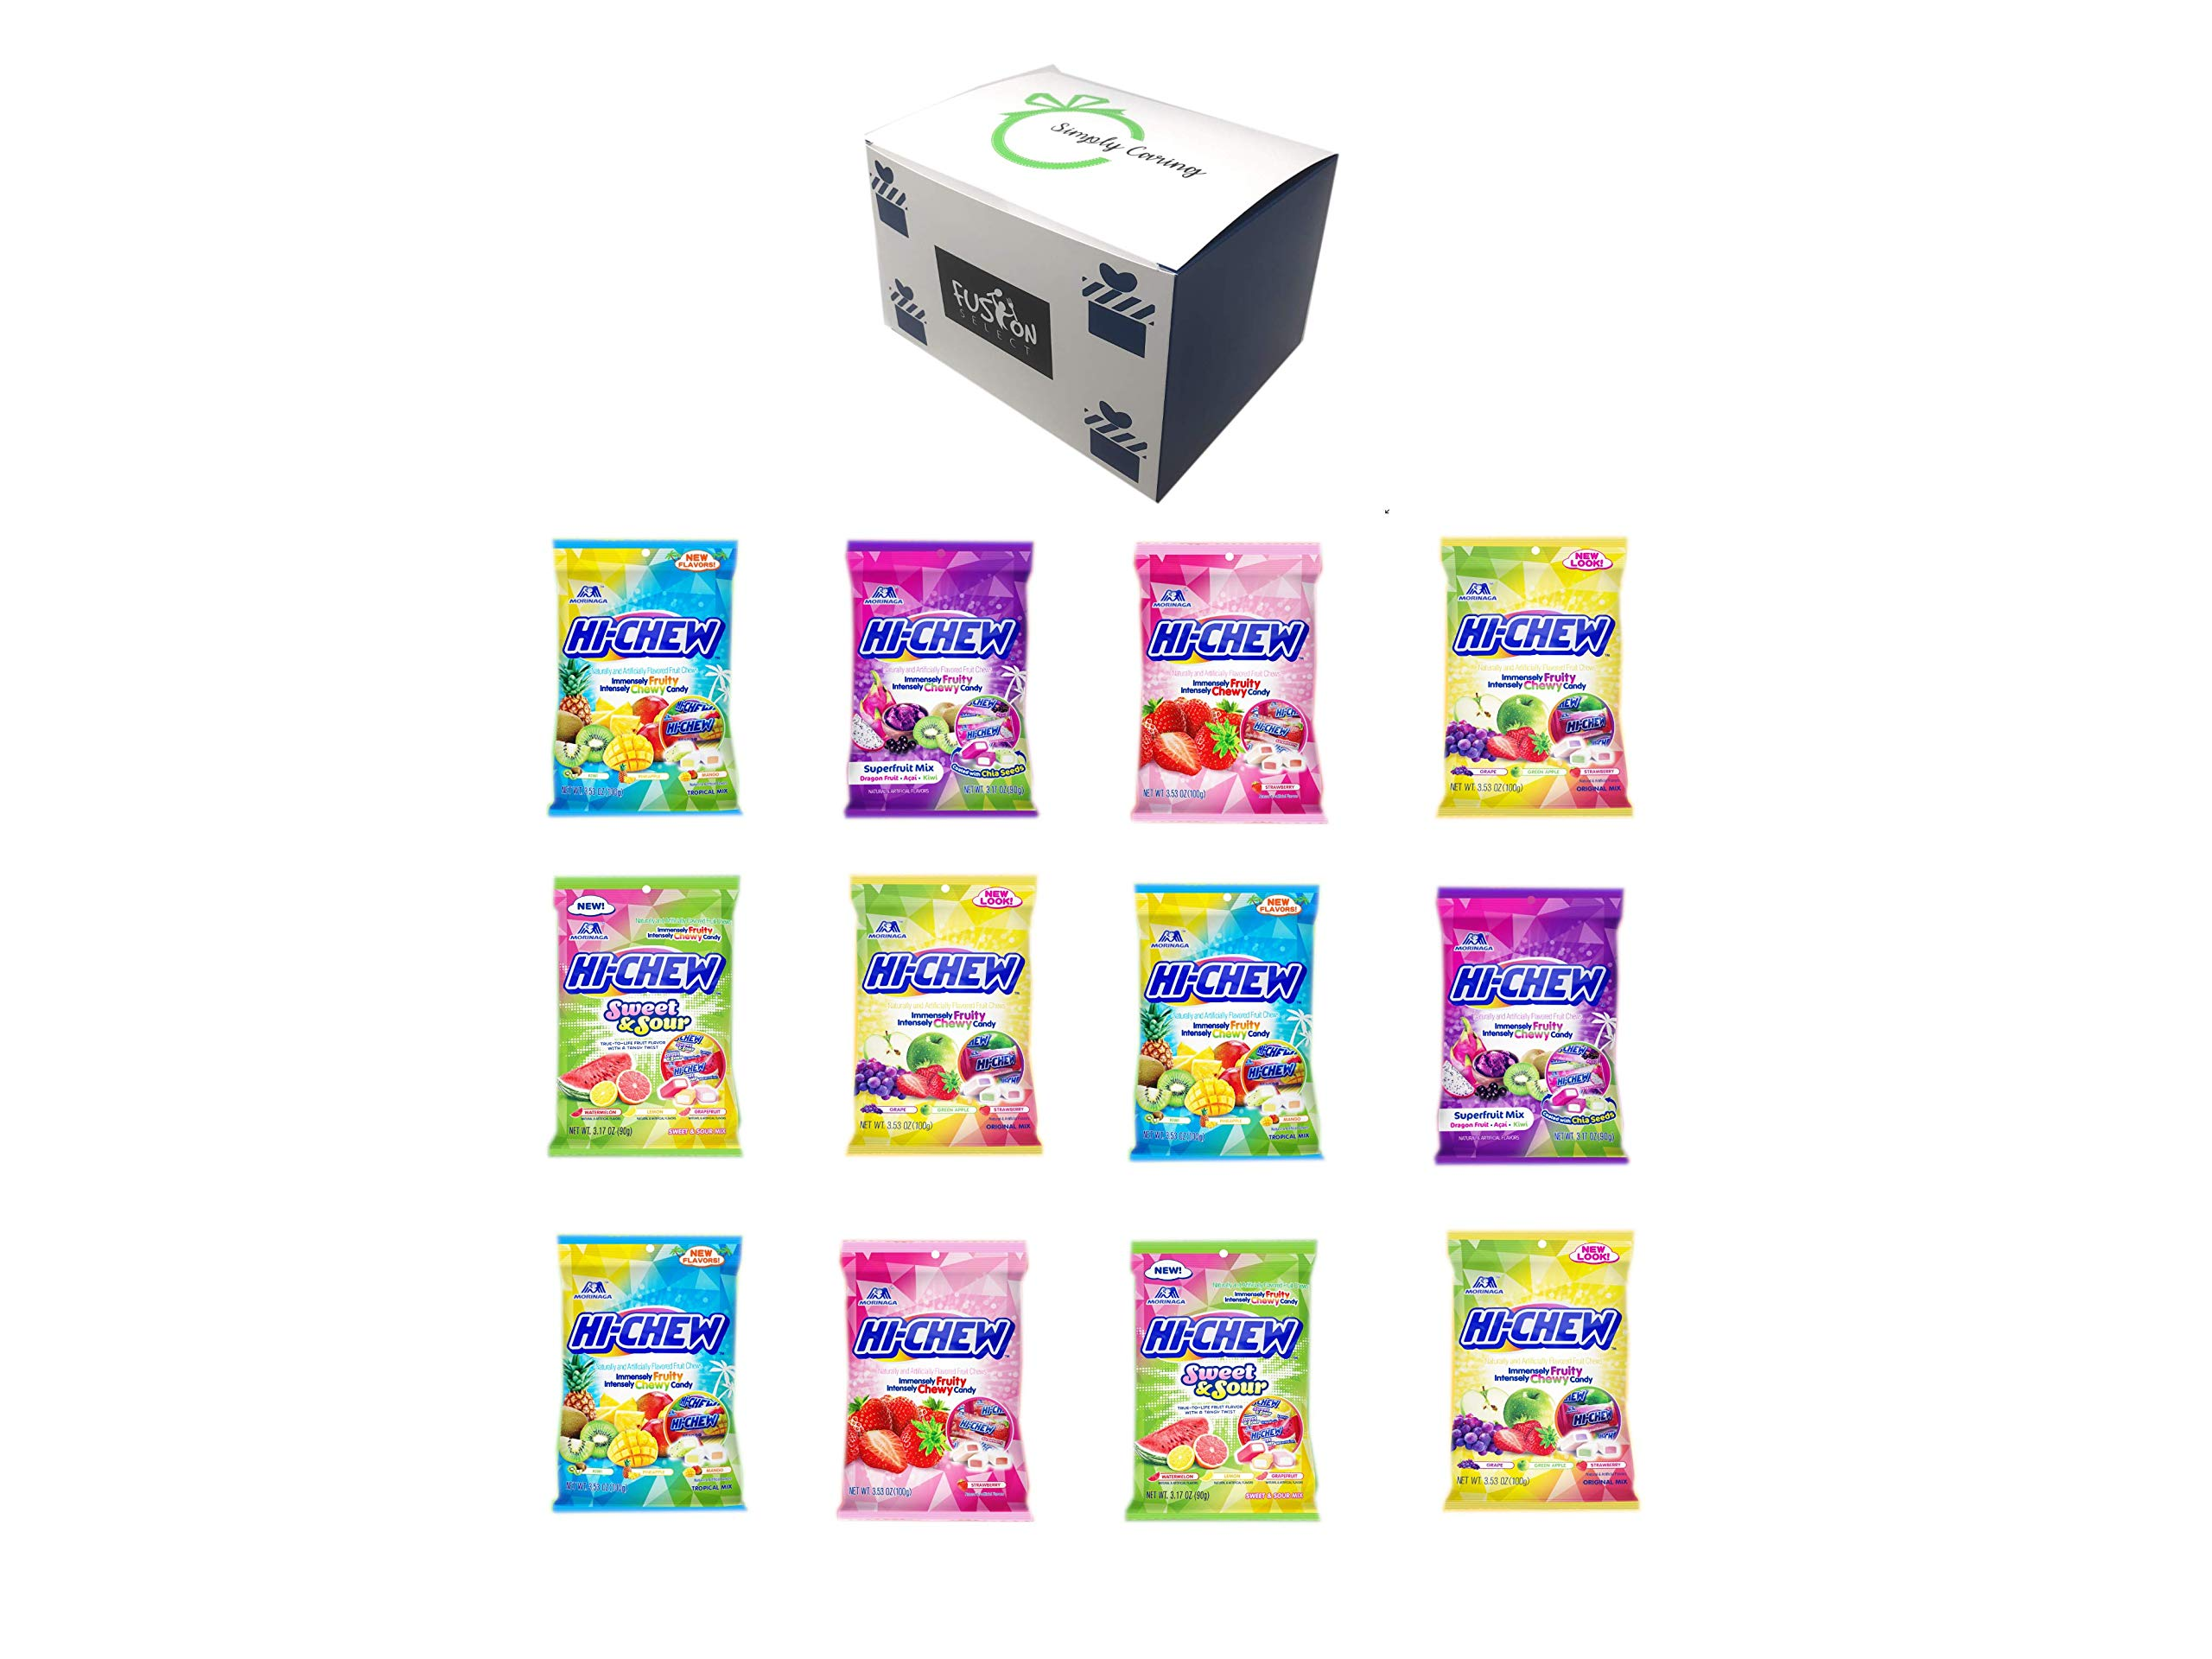 Hi Chew Candy Variety Pack 5 Flavors ( Superfruits, Sweet and Sour, Tropical Mix, Original Mix, and Strawberry) Pack of 12 - in Fusion Select Gift Box by Fusion Select